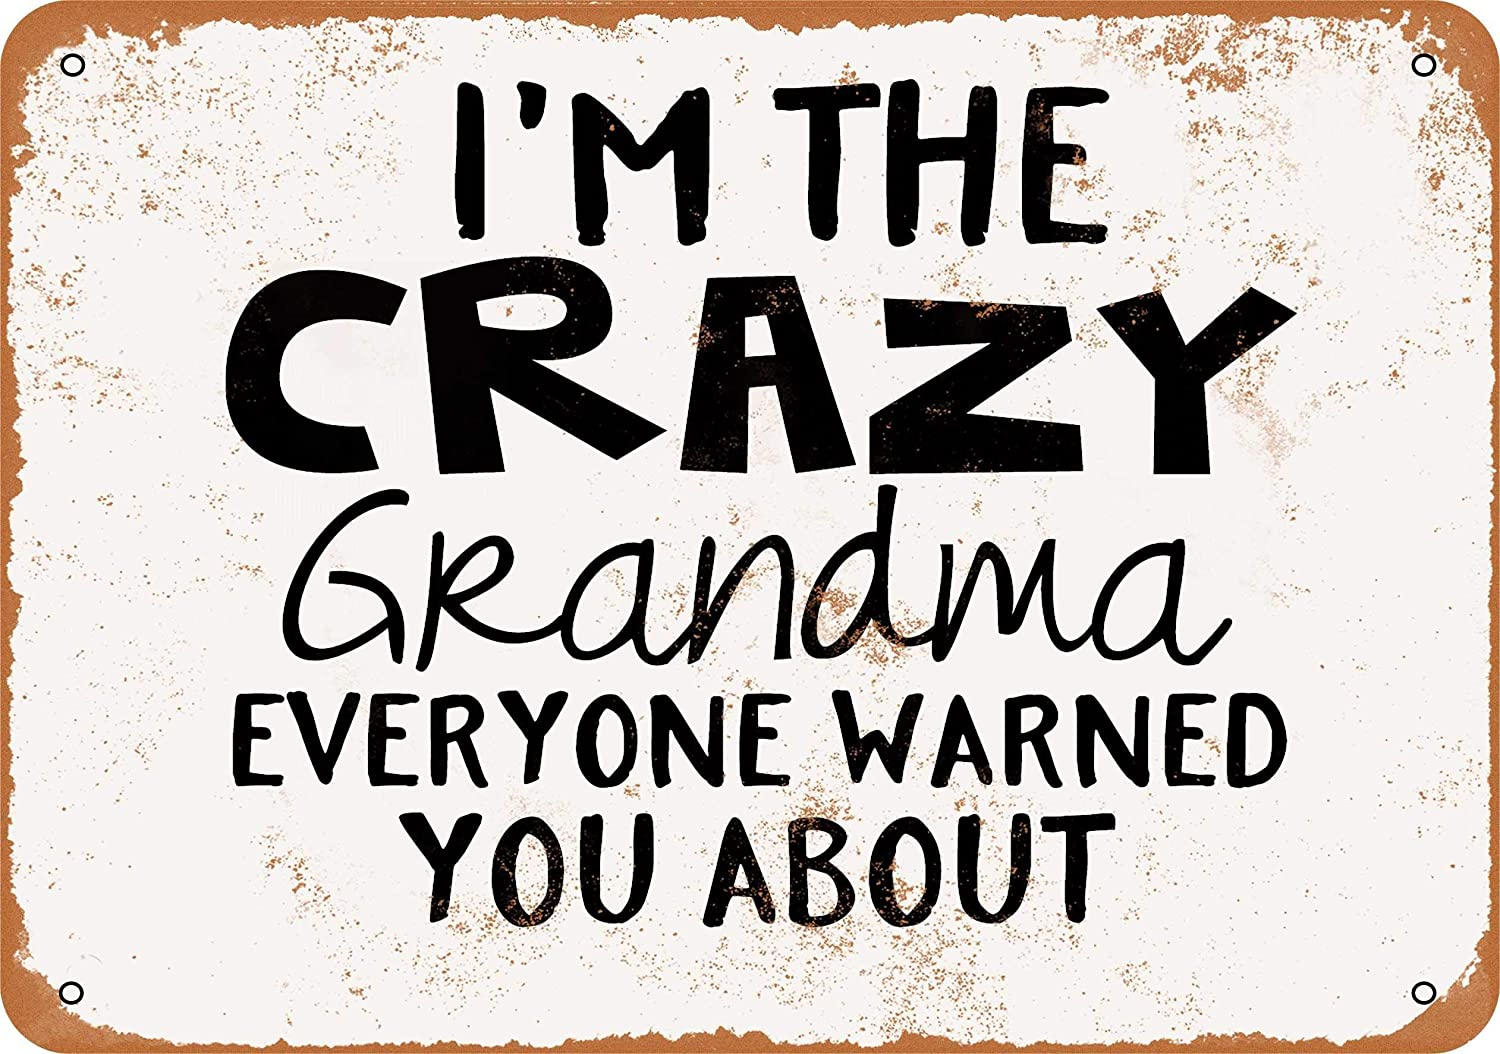 7 x 10 Metal Sign - Crazy Grandma Everyone Warned You About - Vintage Look